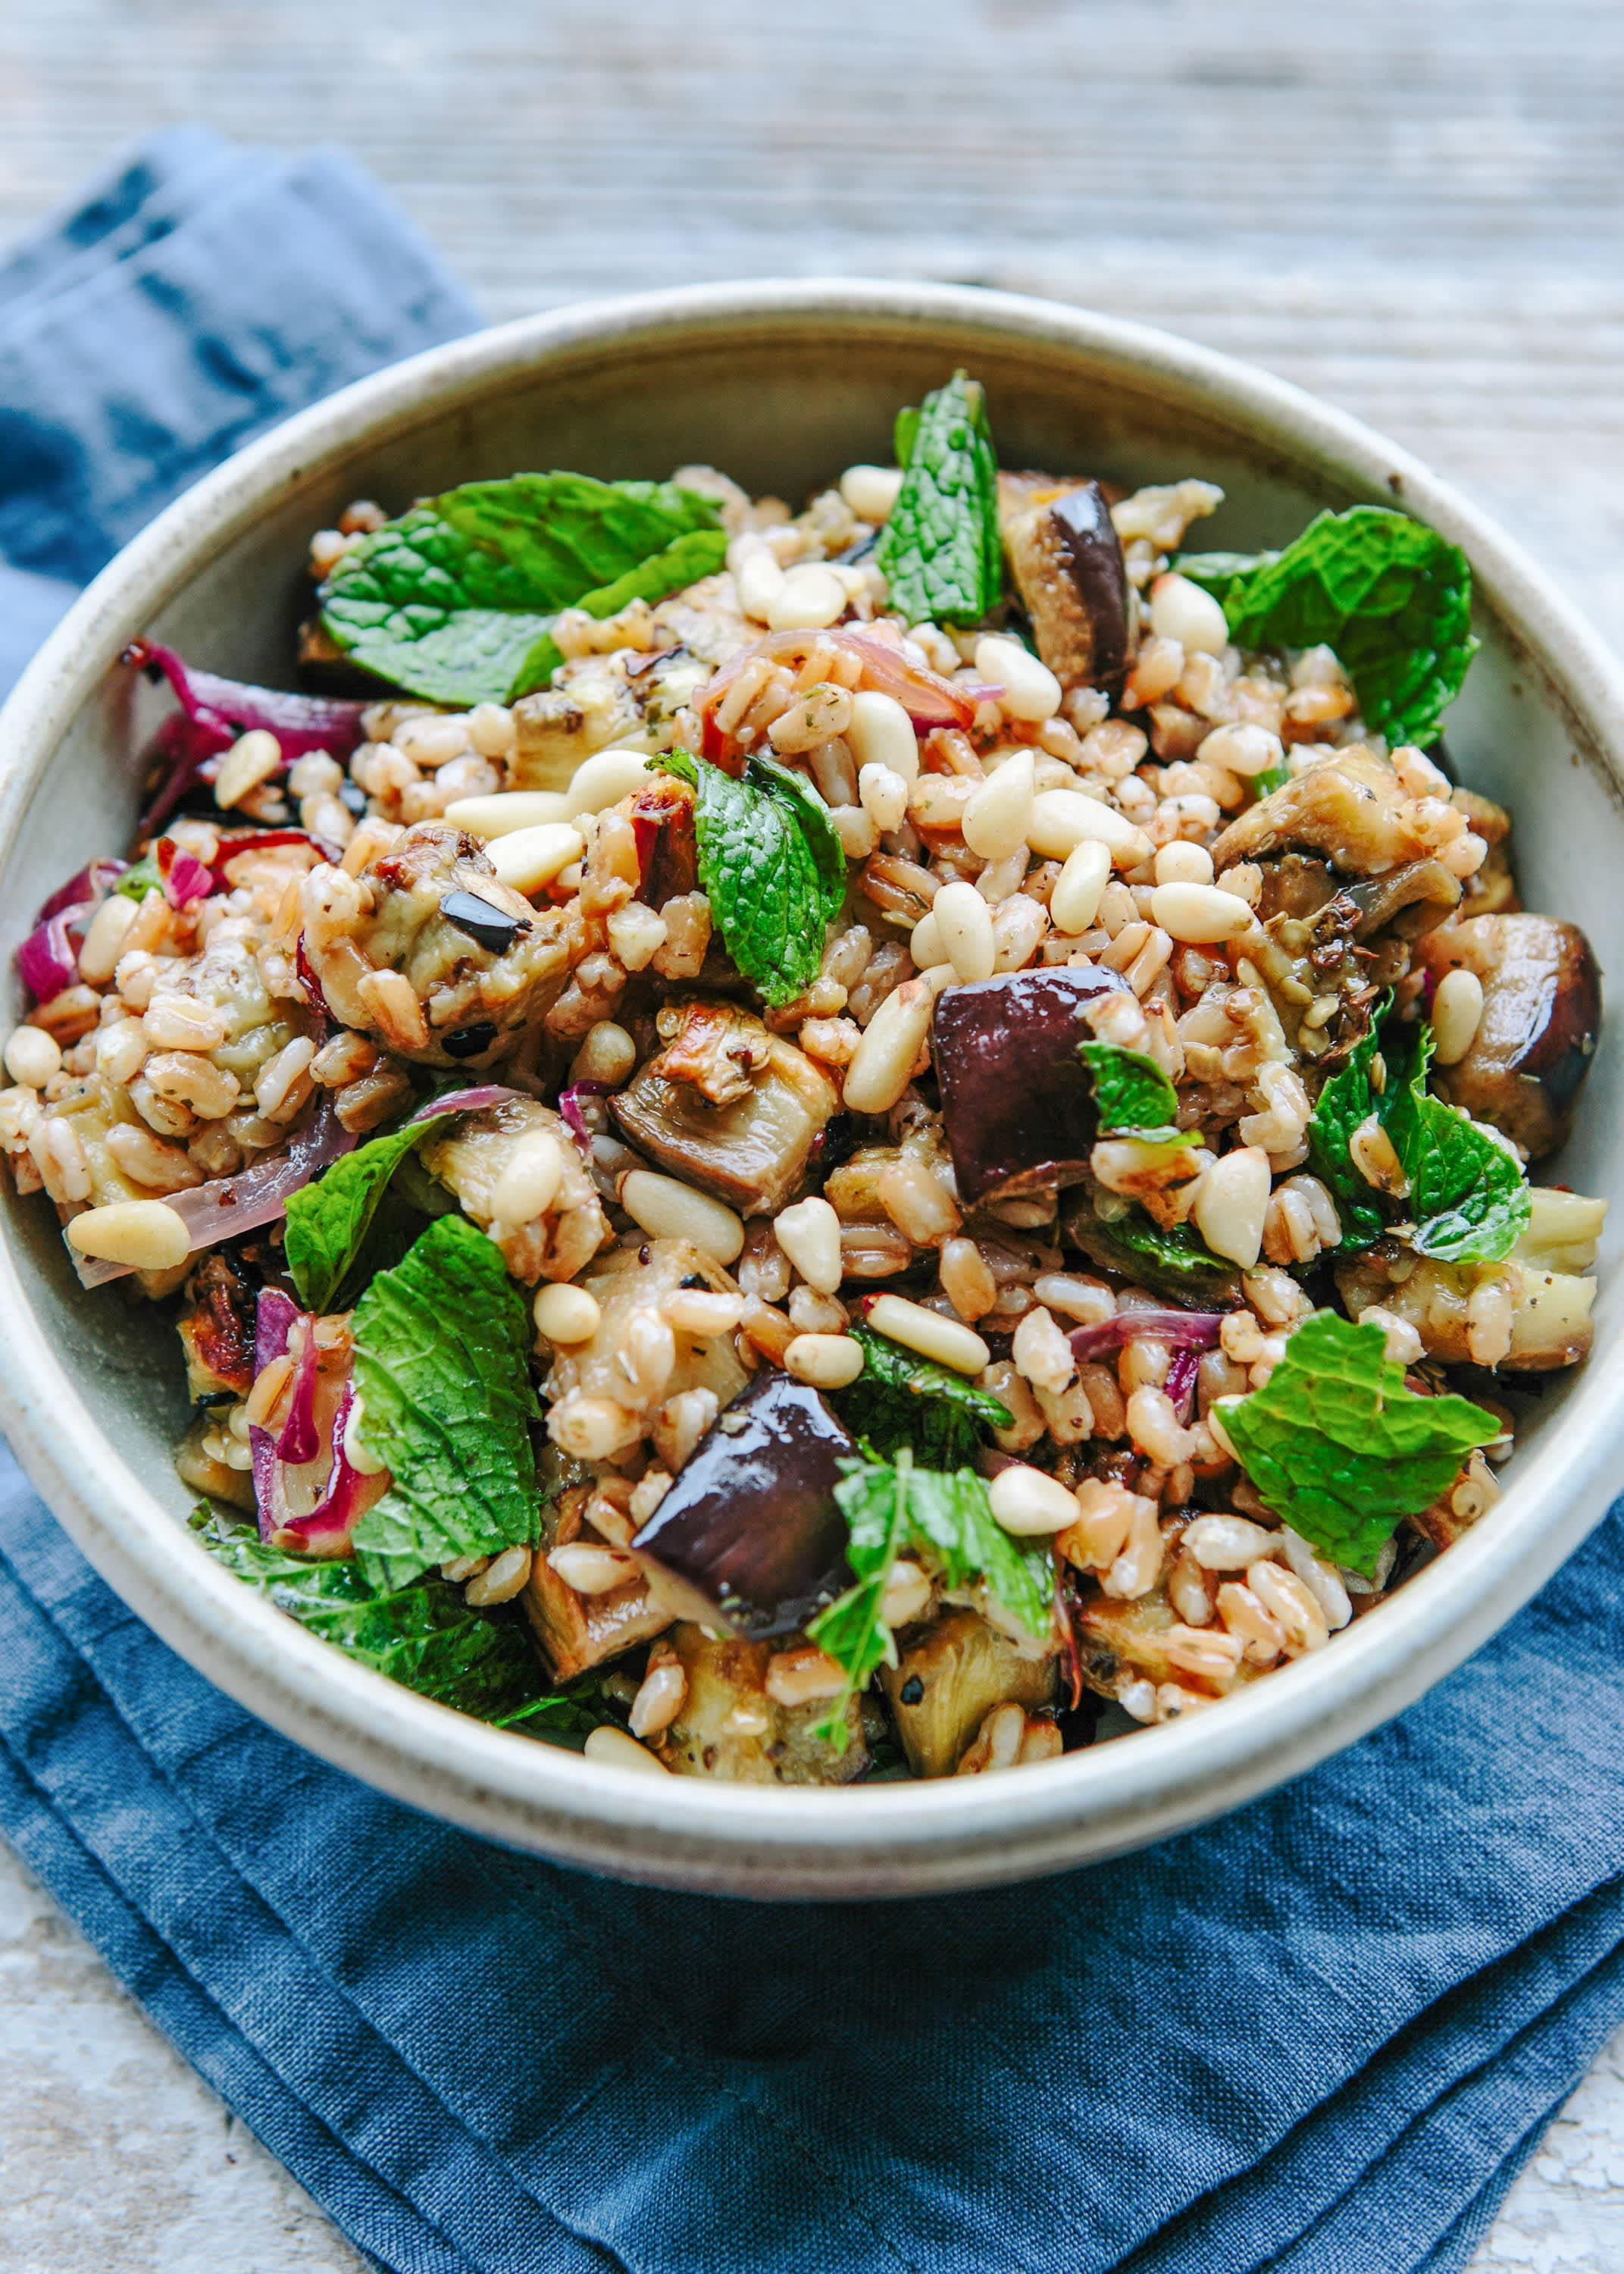 Farro Salad with Roasted Eggplant, Caramelized Onion, and Pine Nuts